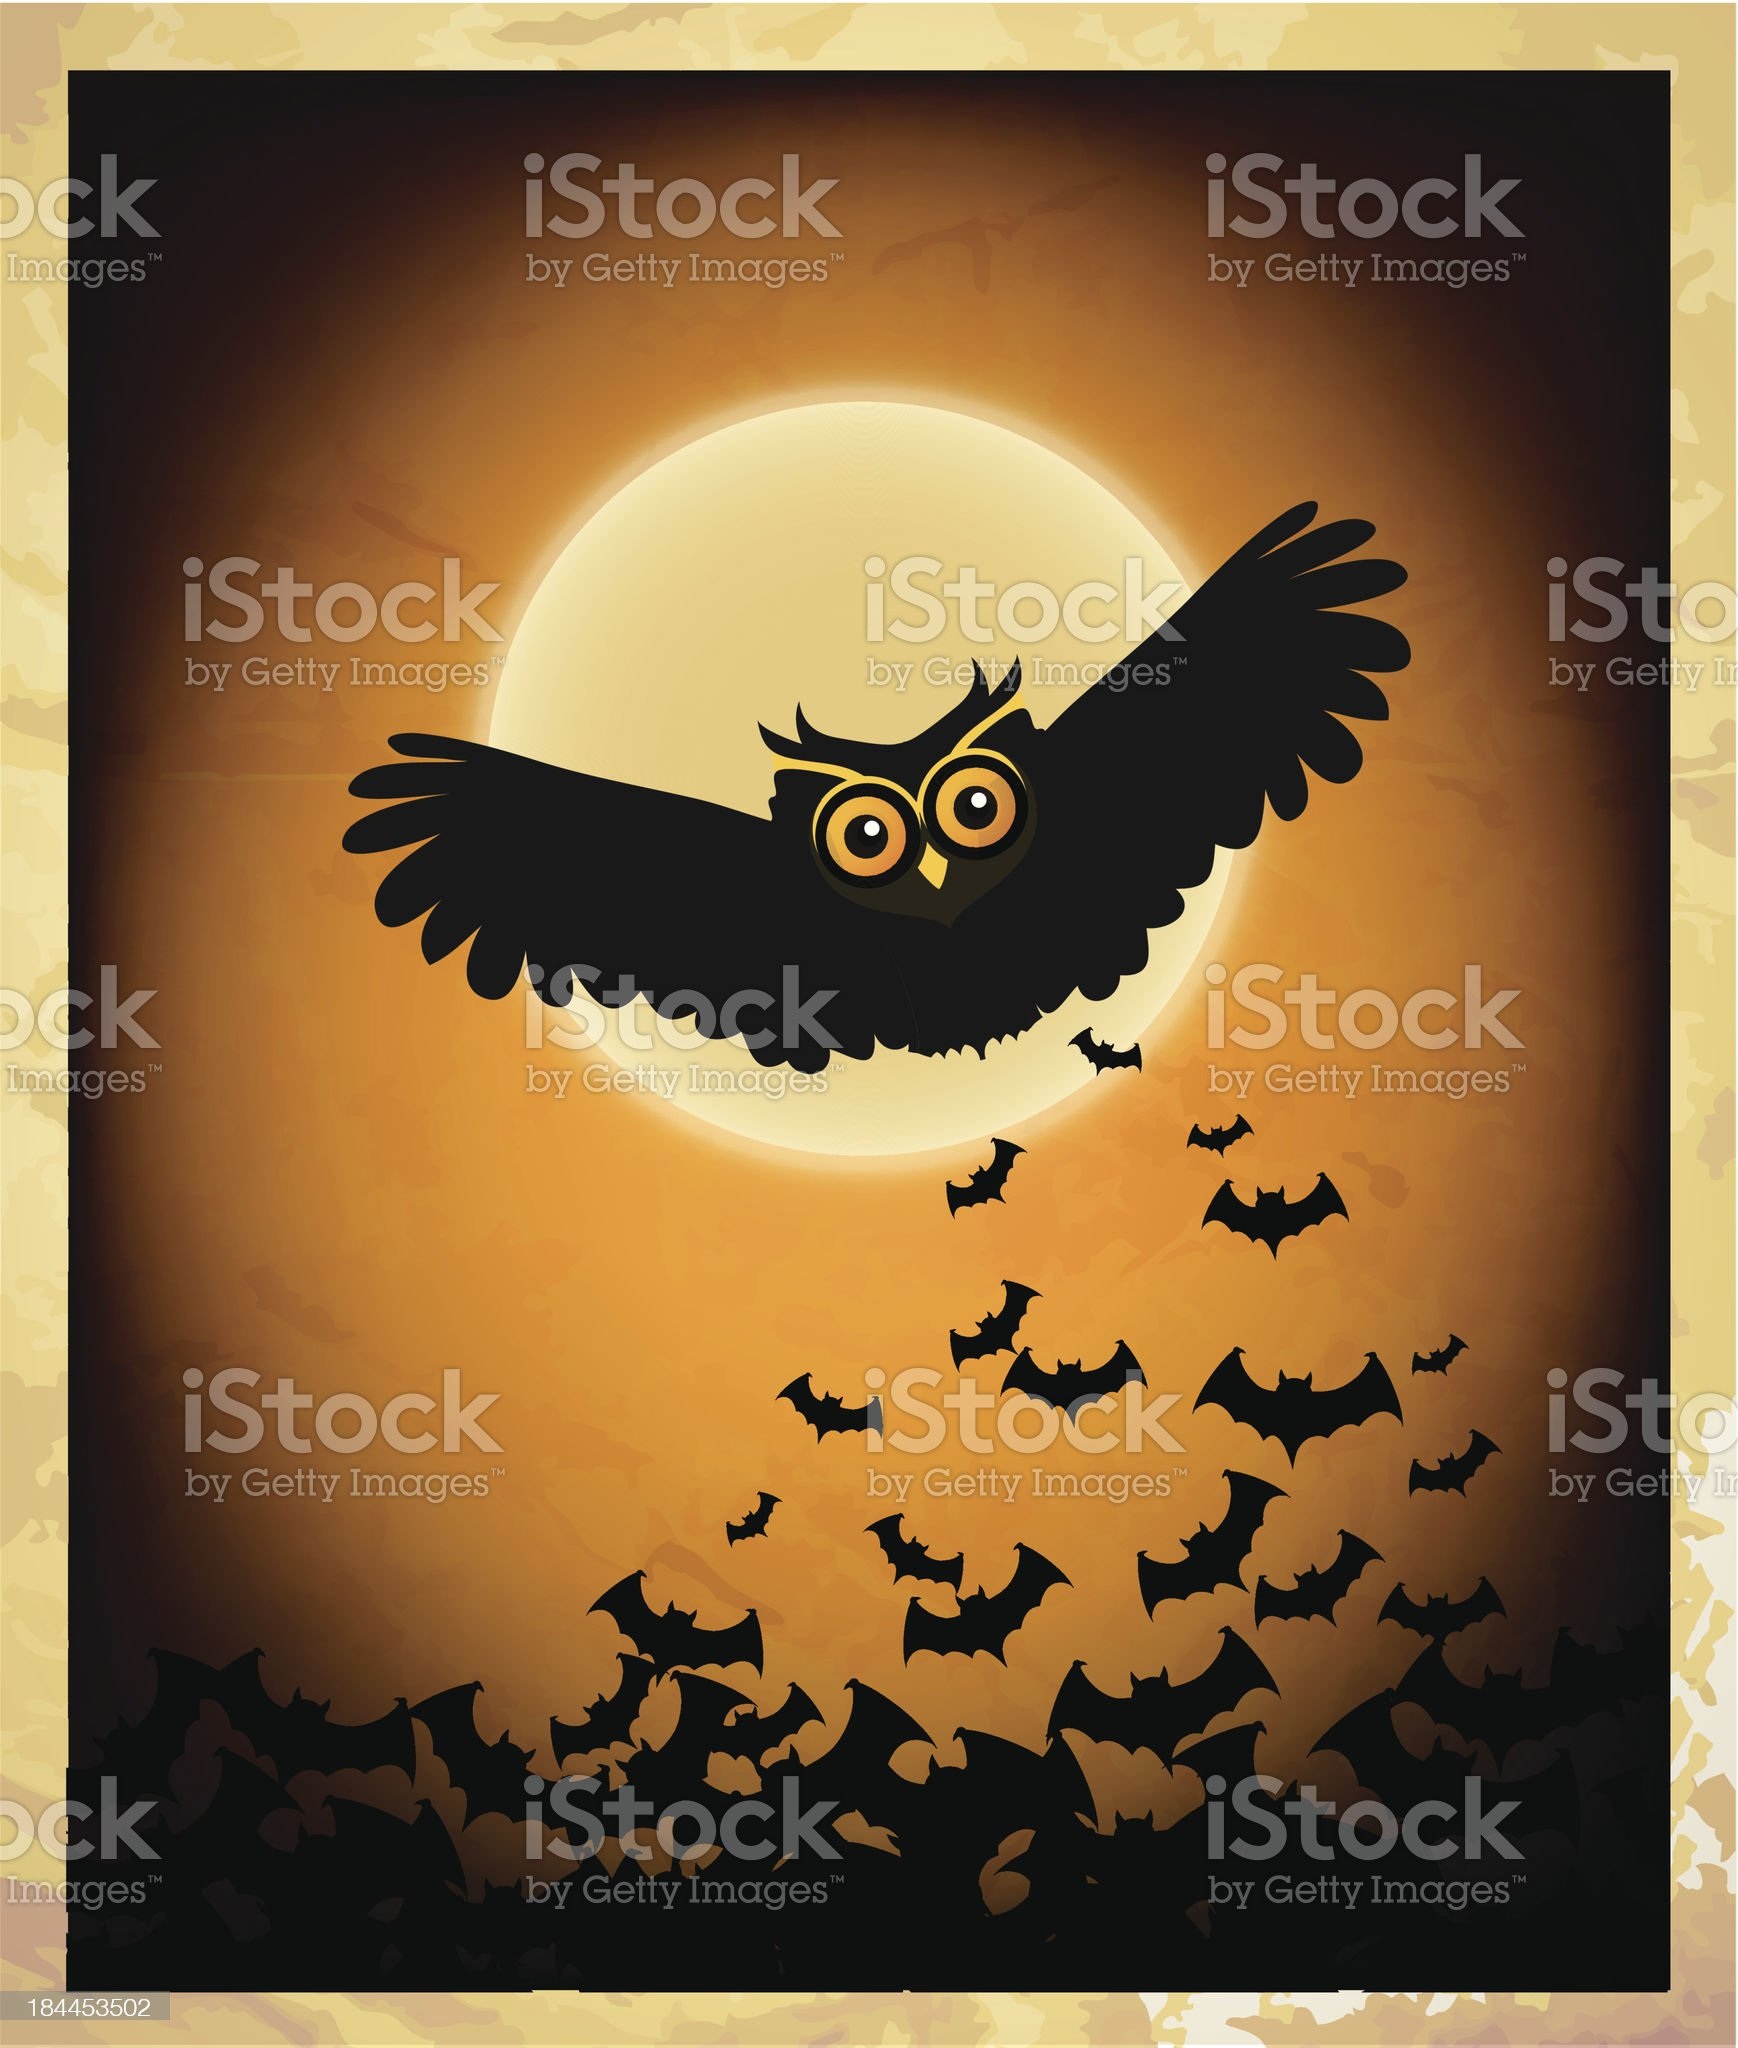 Owl at nite - Illustration royalty-free stock vector art